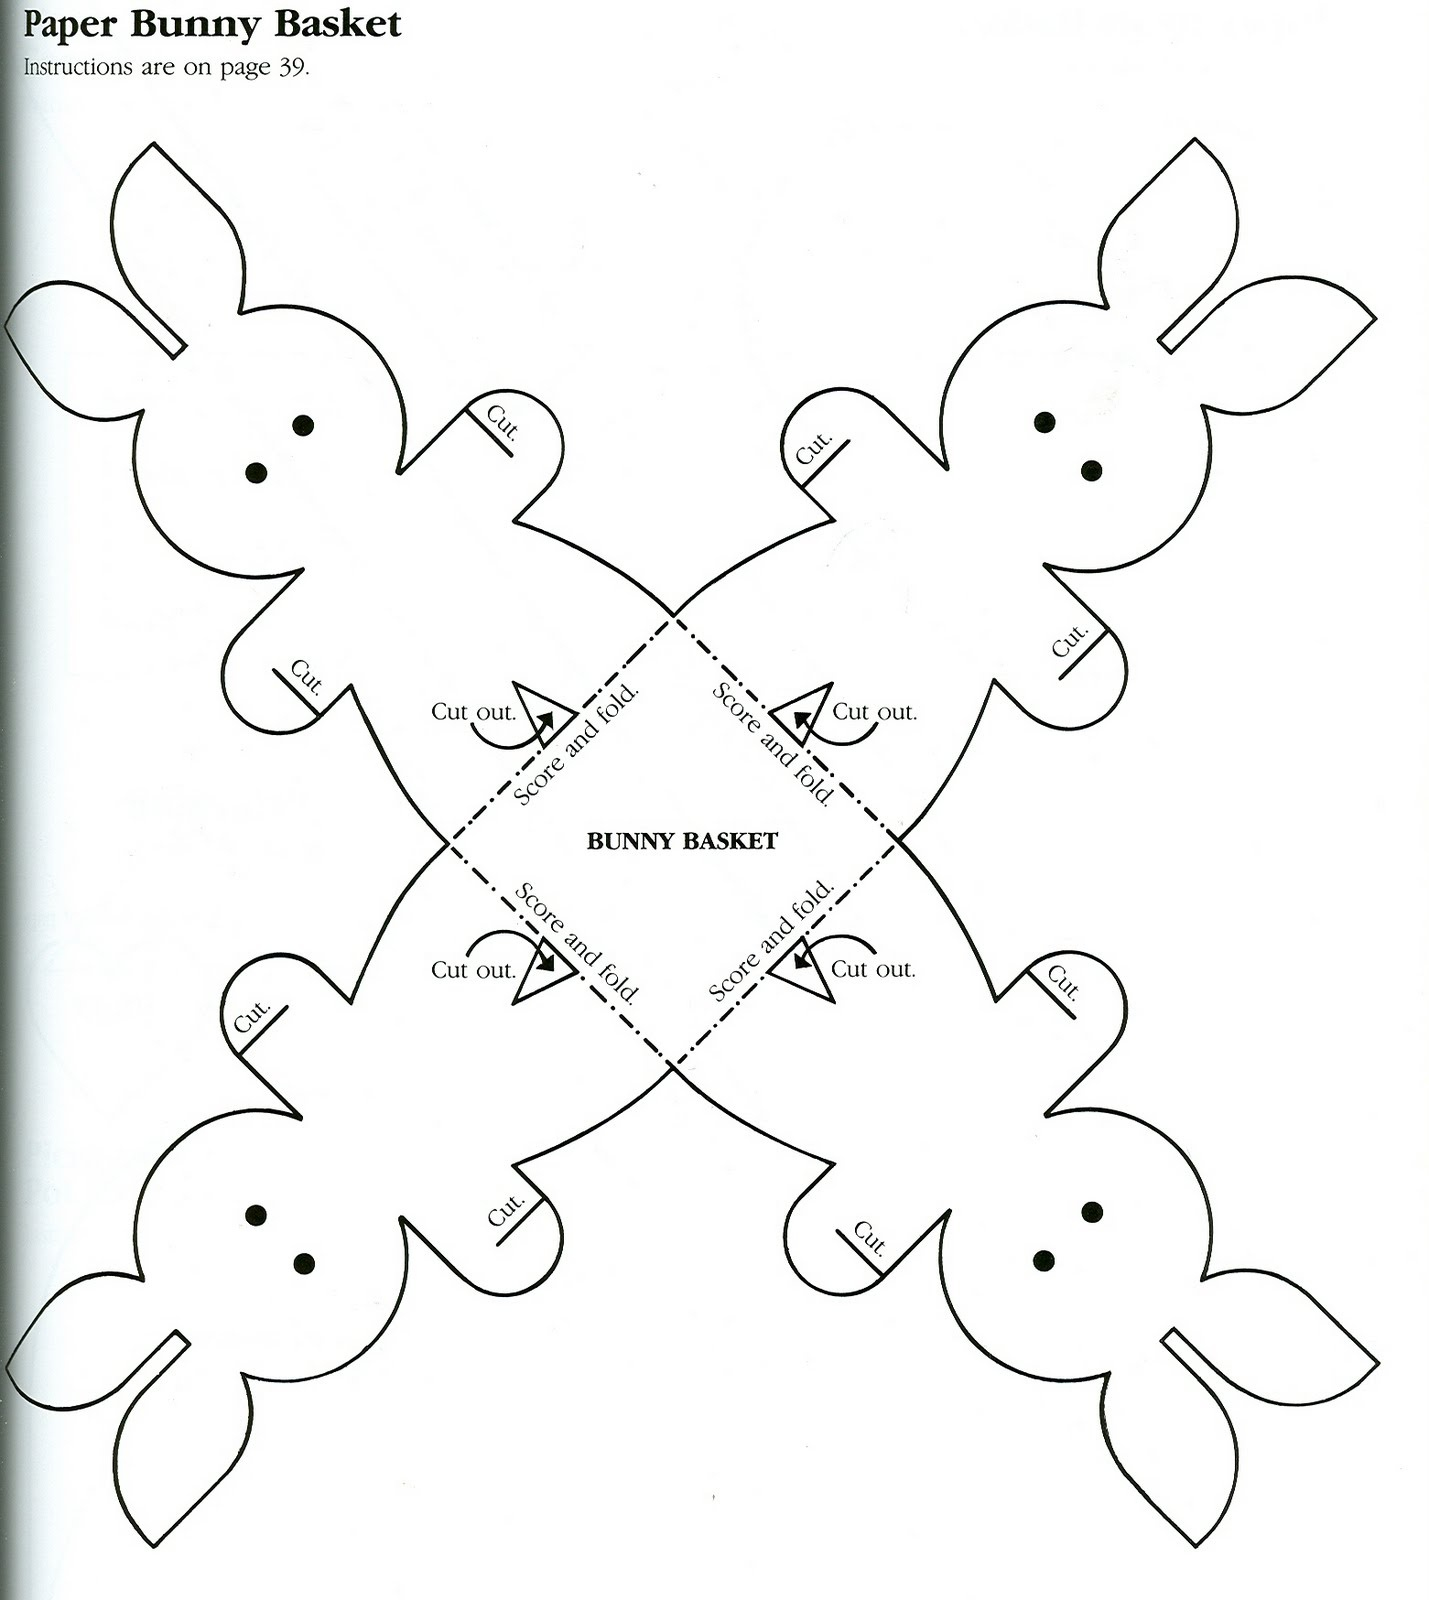 Bunny Easter Basket Printable – Hd Easter Images - Free Printable Easter Baskets